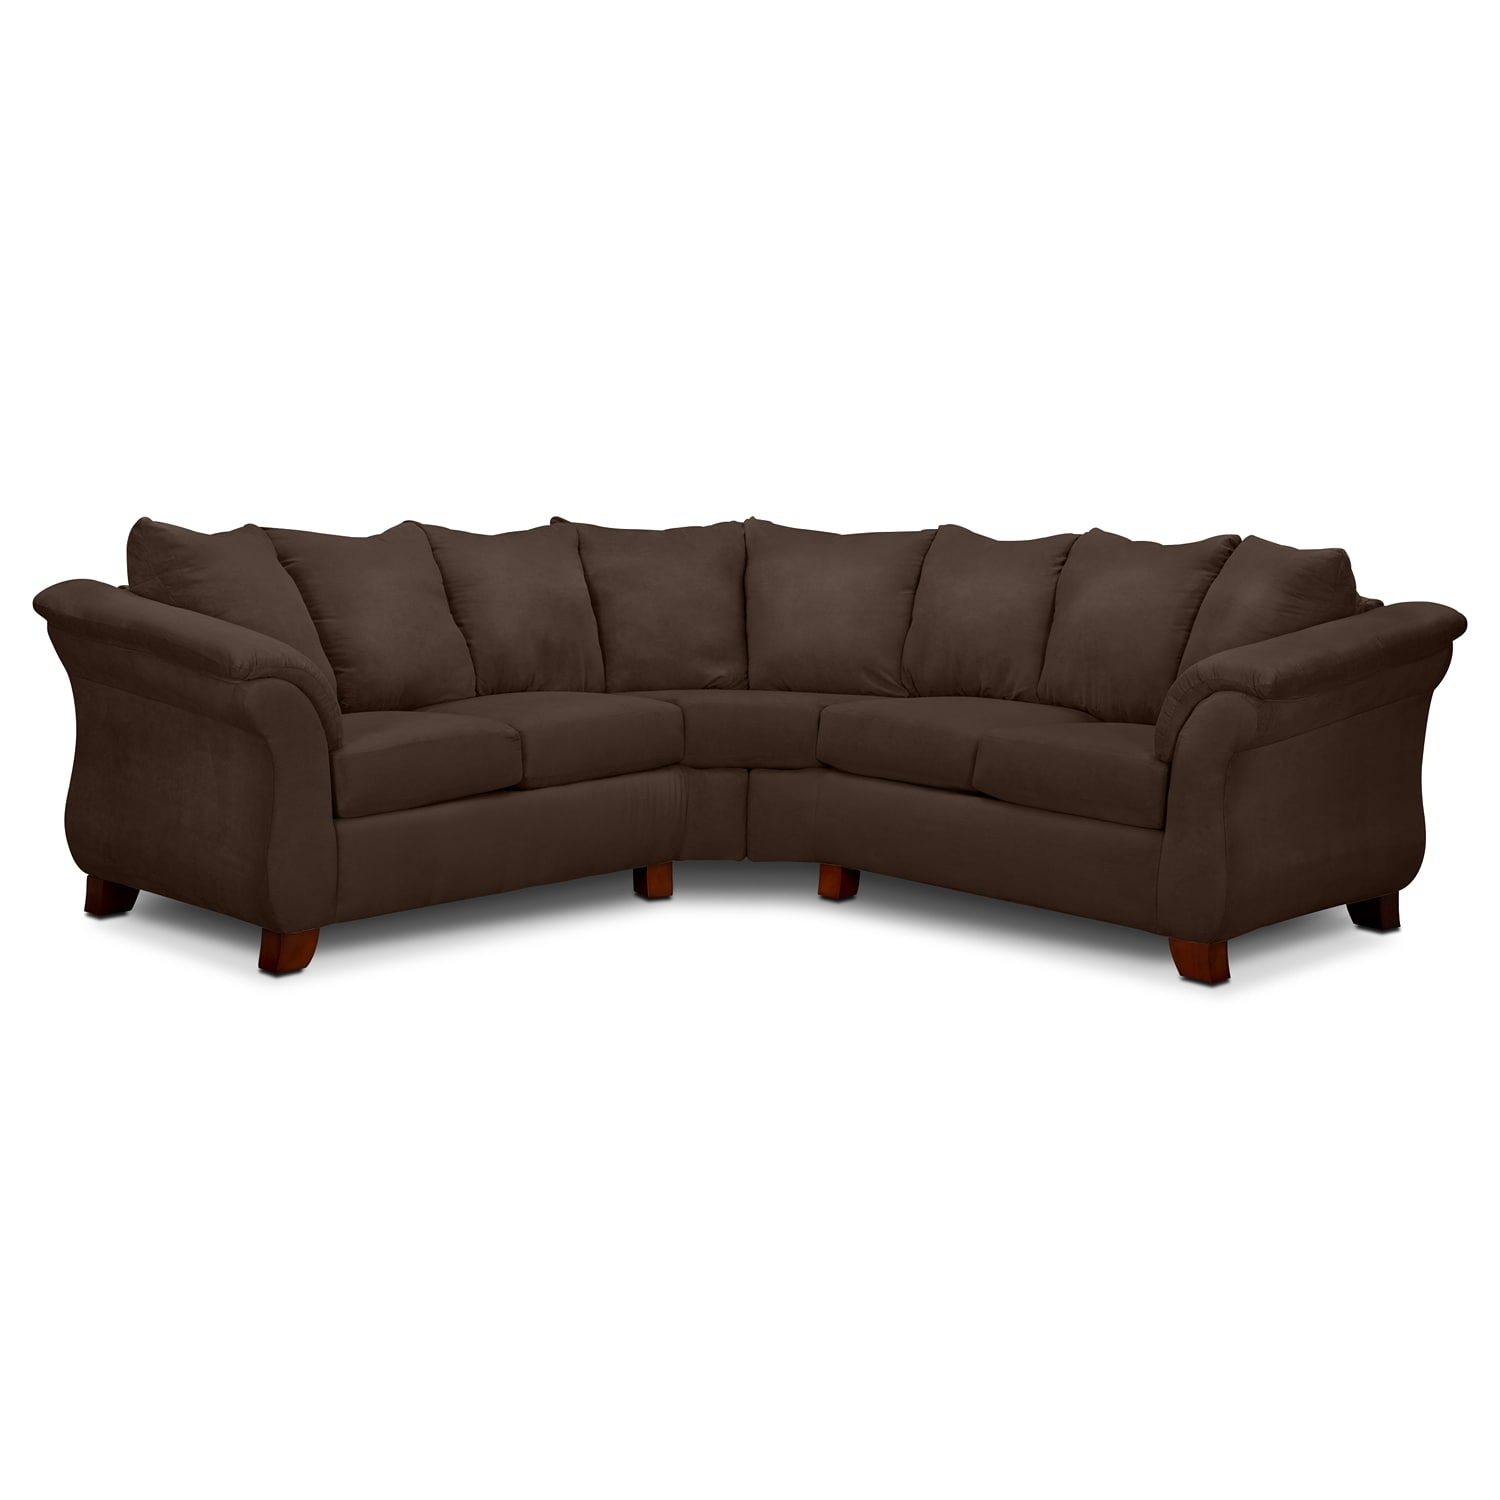 Adrian 2 piece sectional chocolate value city furniture for Whitten 2 piece sectional sofa